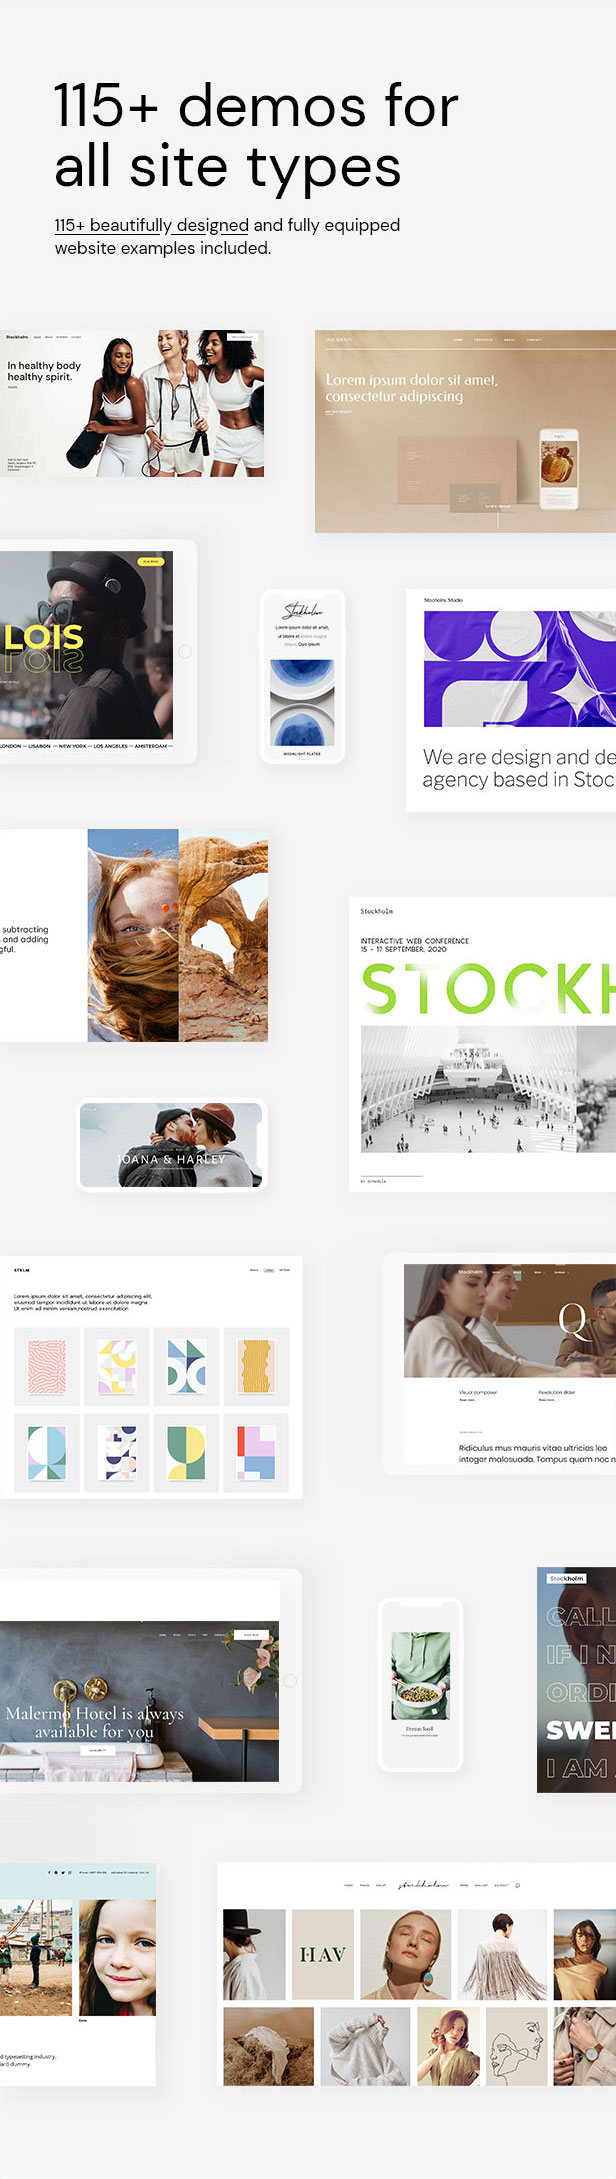 Stockholm - A Genuinely Multi-Concept Theme - 2